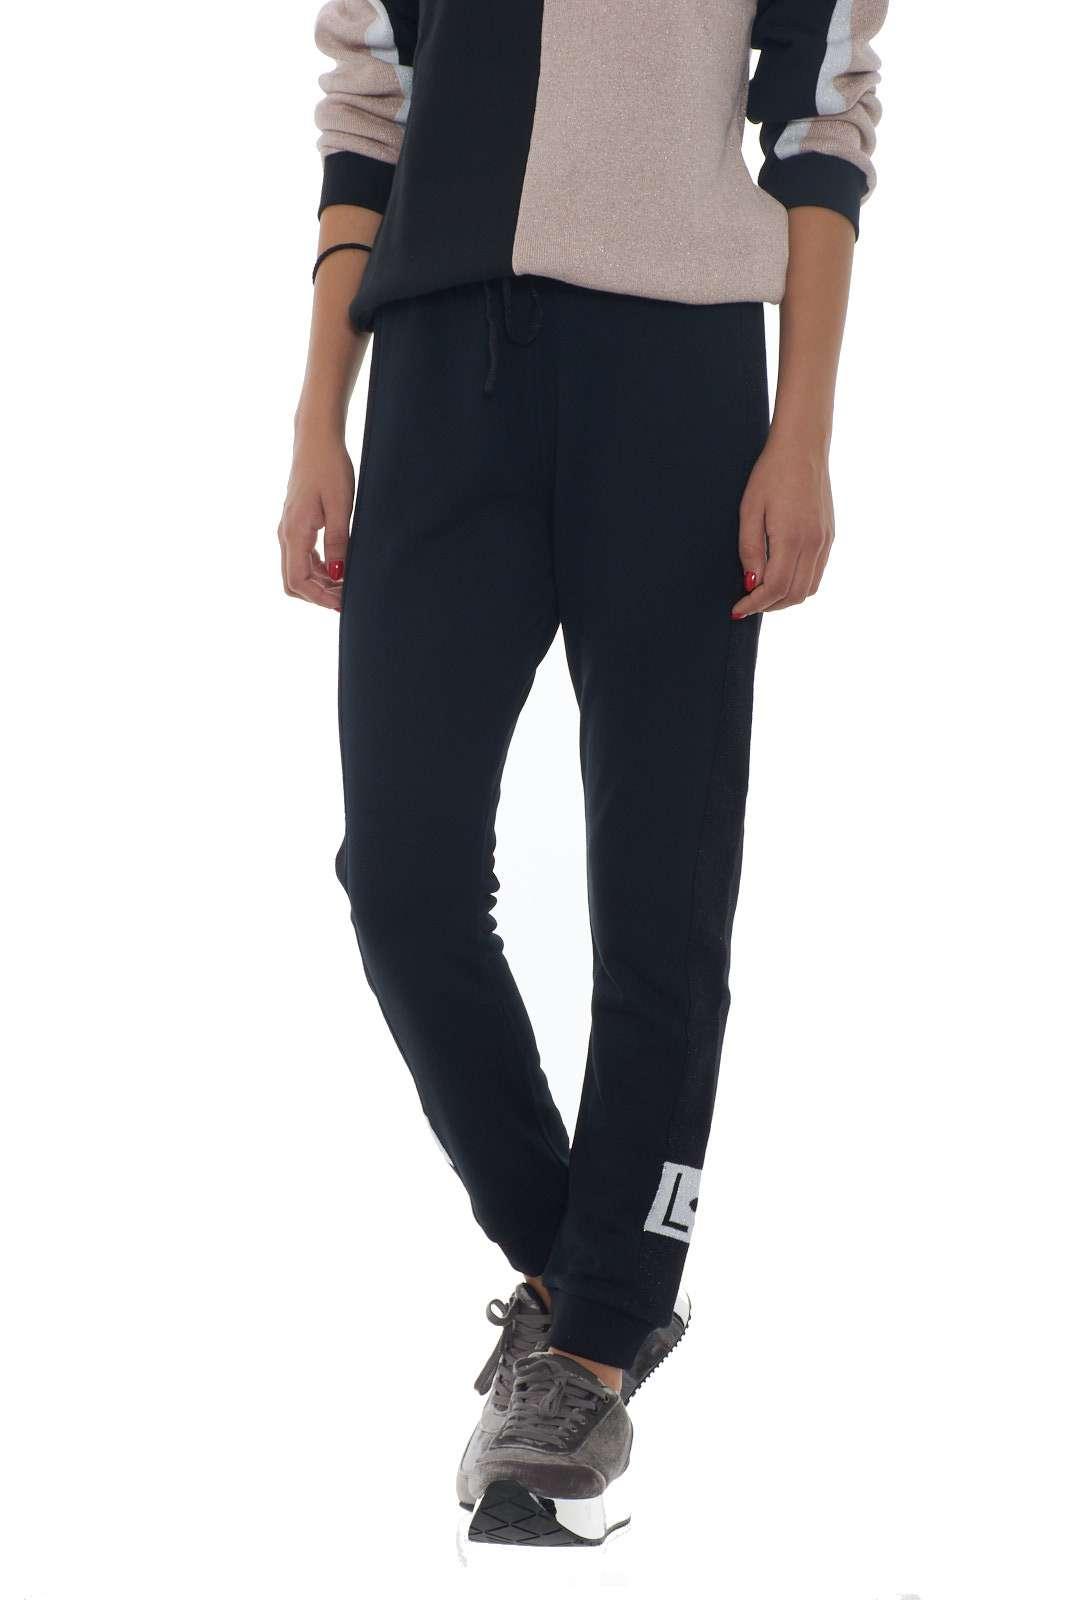 https://www.parmax.com/media/catalog/product/a/i/AI-outlet_parmax-pantaloni-donna-Liu-Jo-T69105-A.jpg